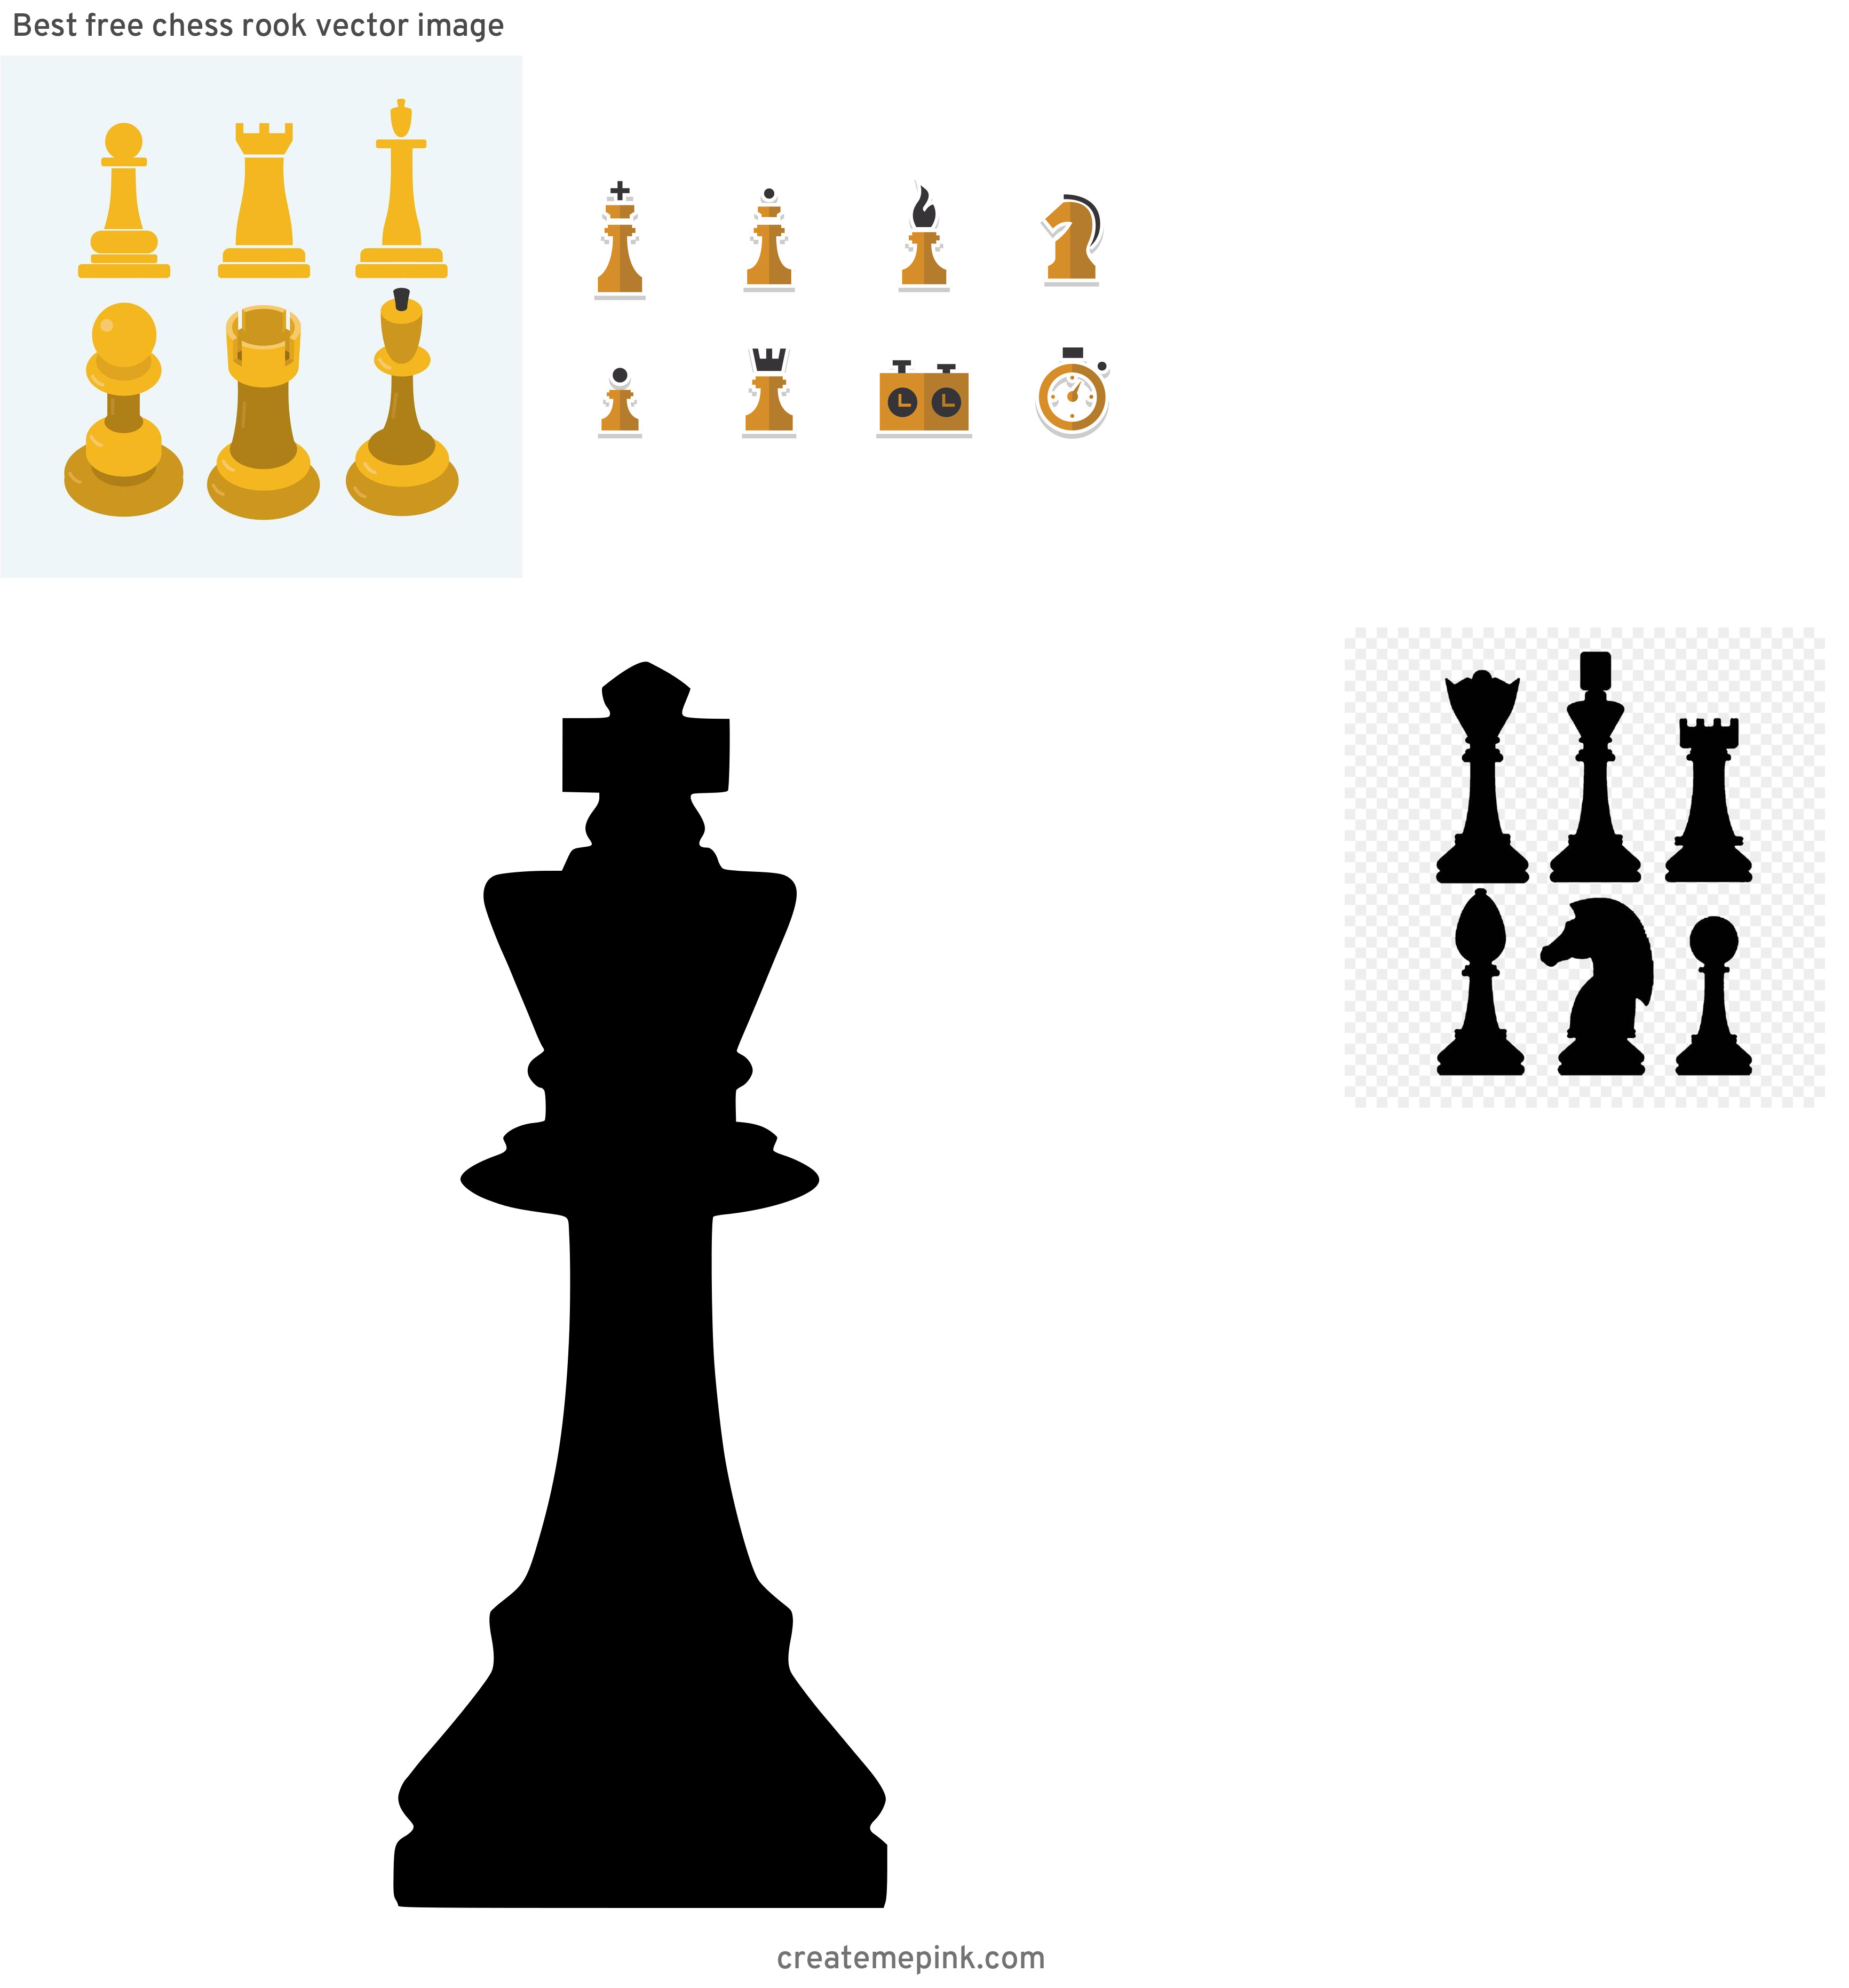 Chess Vector Graphic: Best Free Chess Rook Vector Image